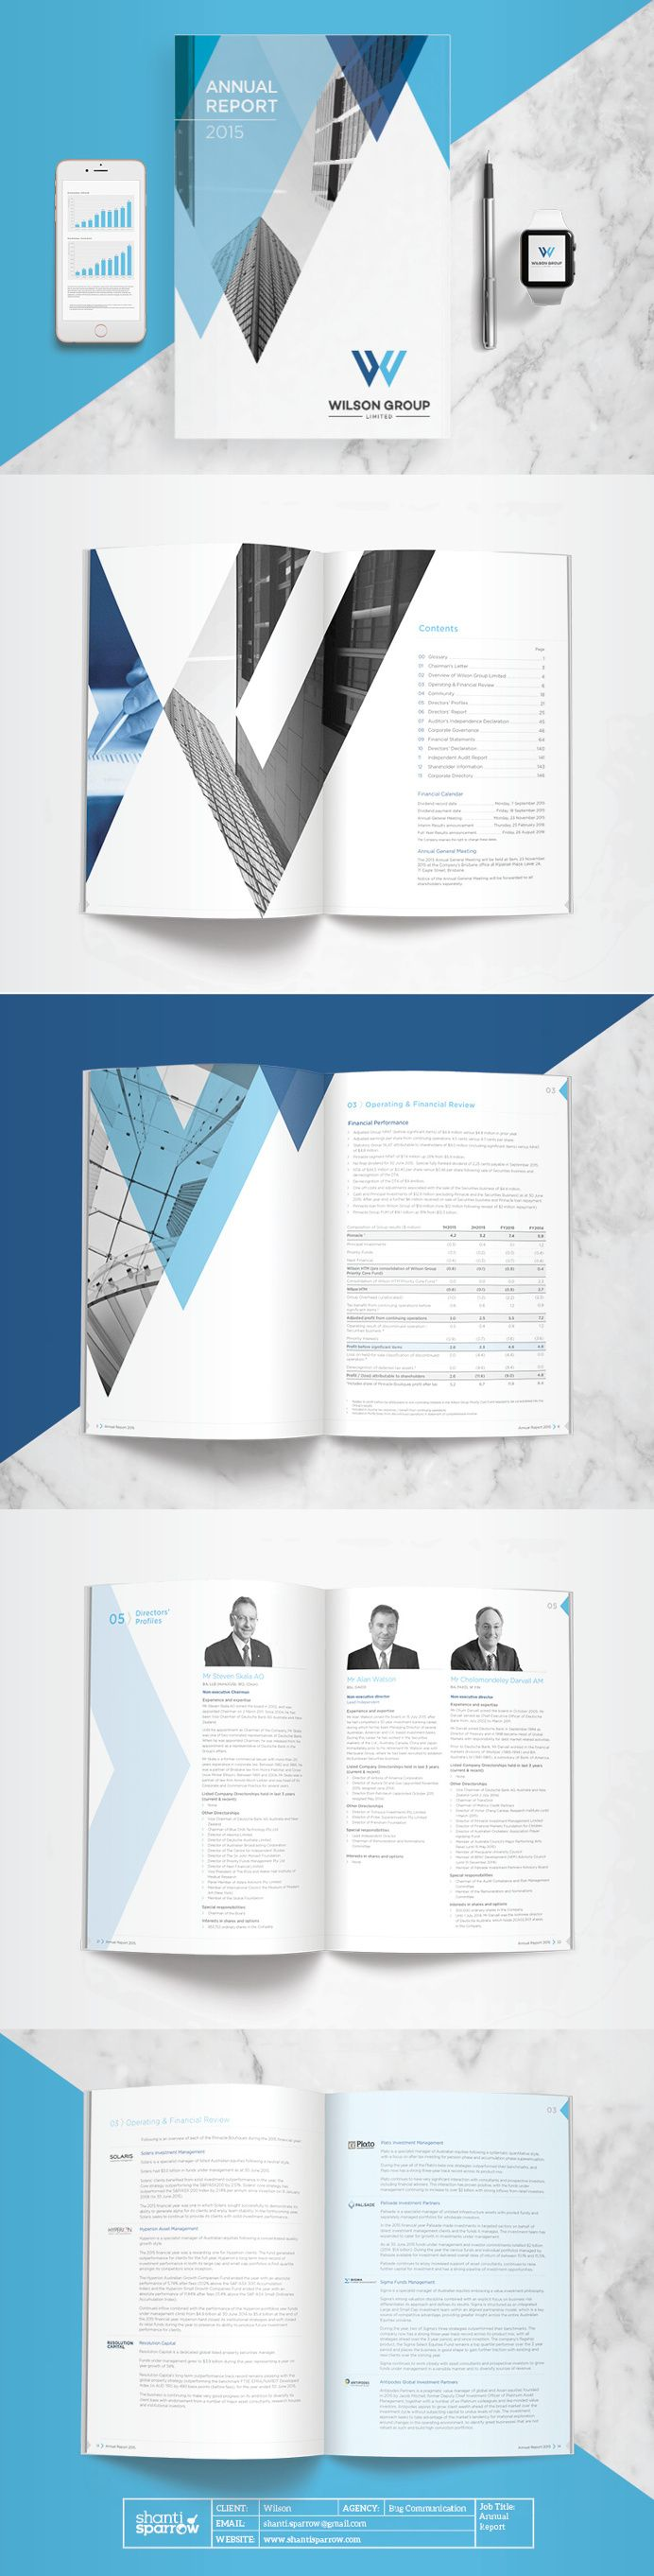 Design by Shanti Sparrow Client: Wilson Project Name: Annual Report www.shantisparrow.com  #Design #graphicdesign #illustration #layout #mag